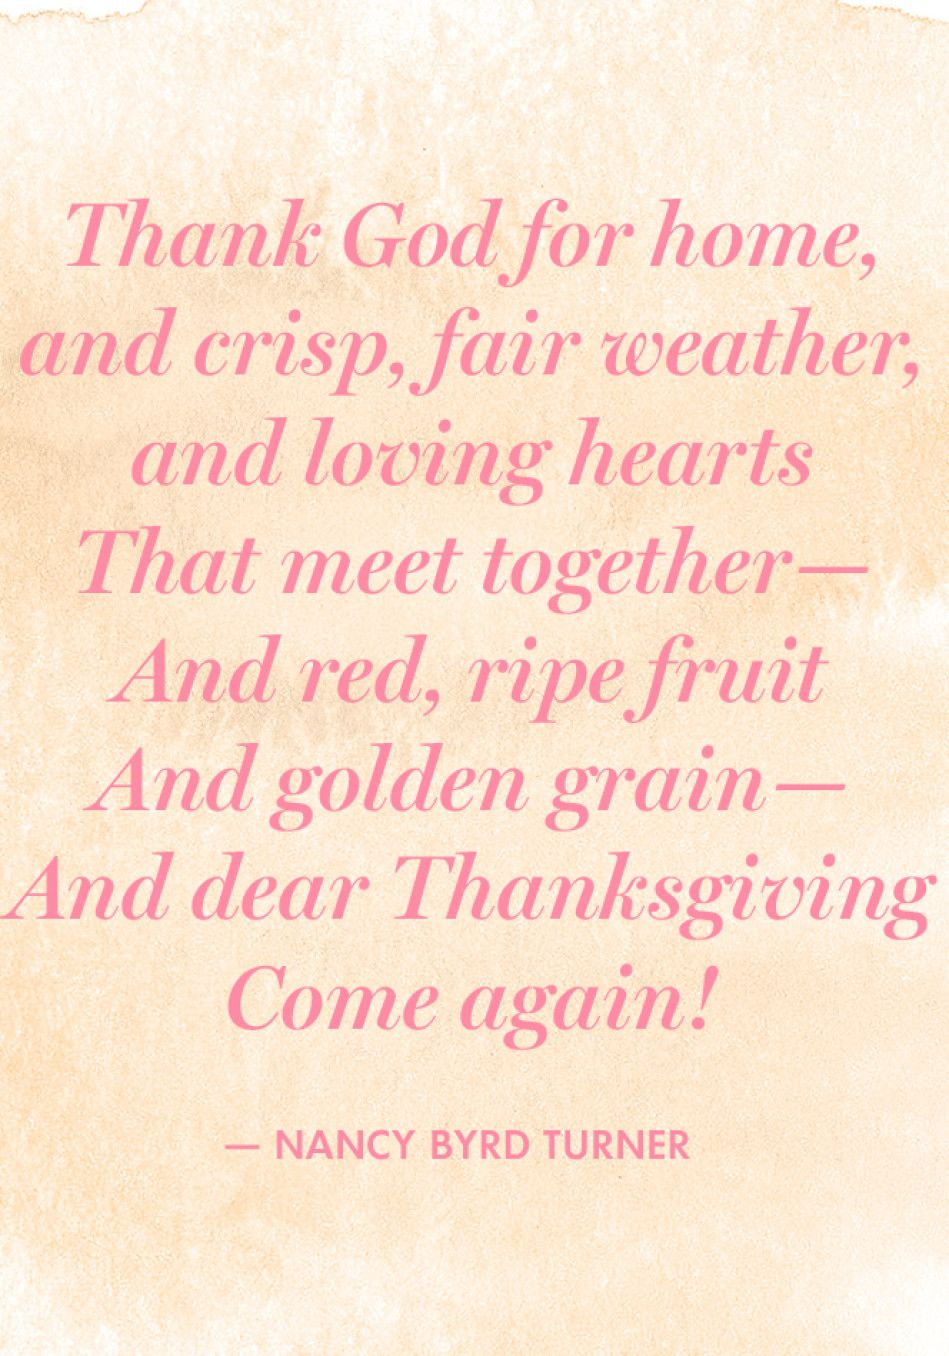 13 Things To Say For Grace Thanksgiving Prayer Prayers Cool Words